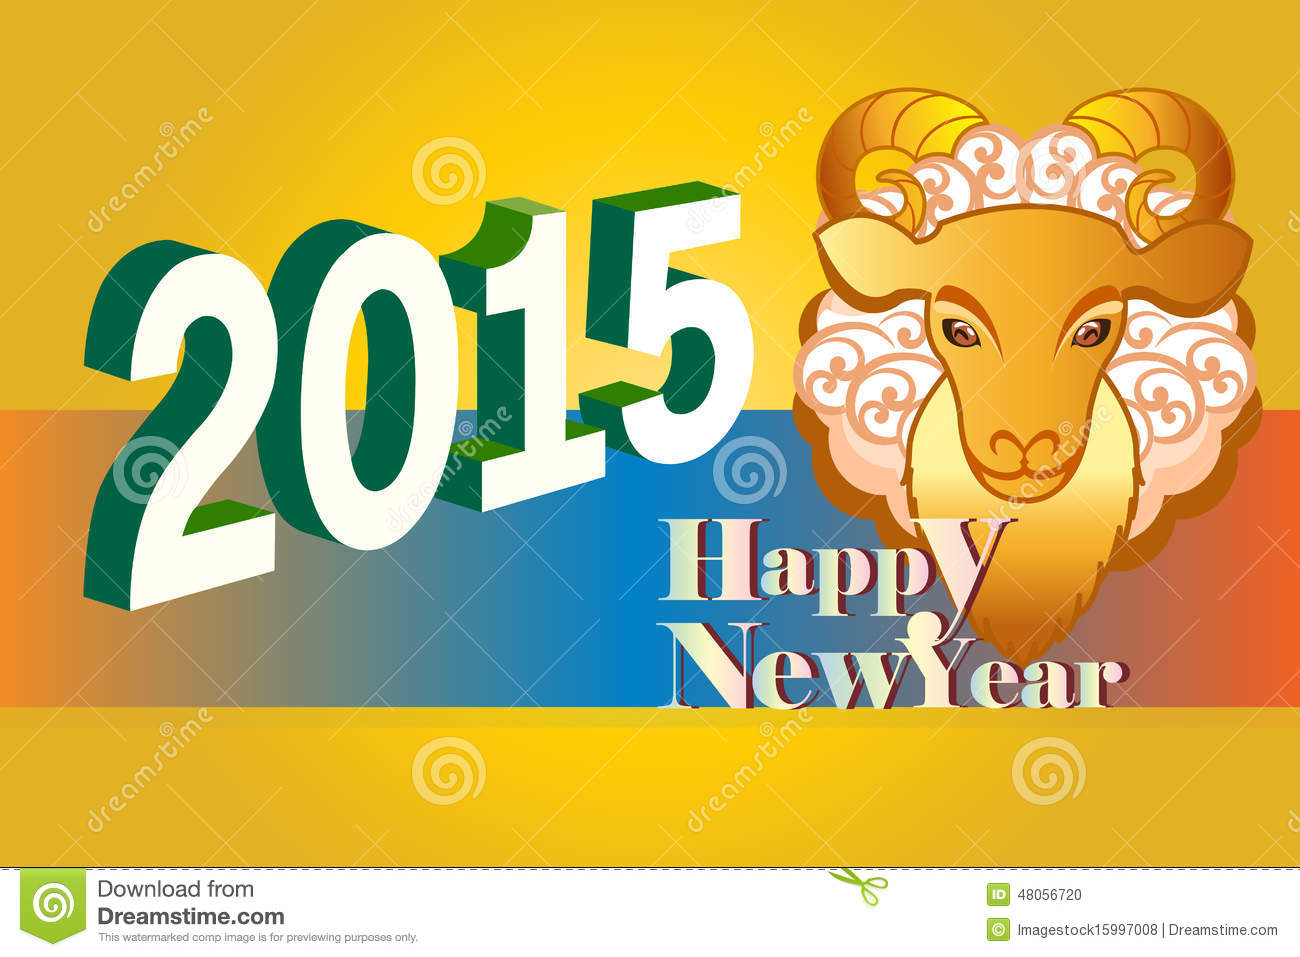 2015 korean happy new year background with animal sysmbol eps10 illustration